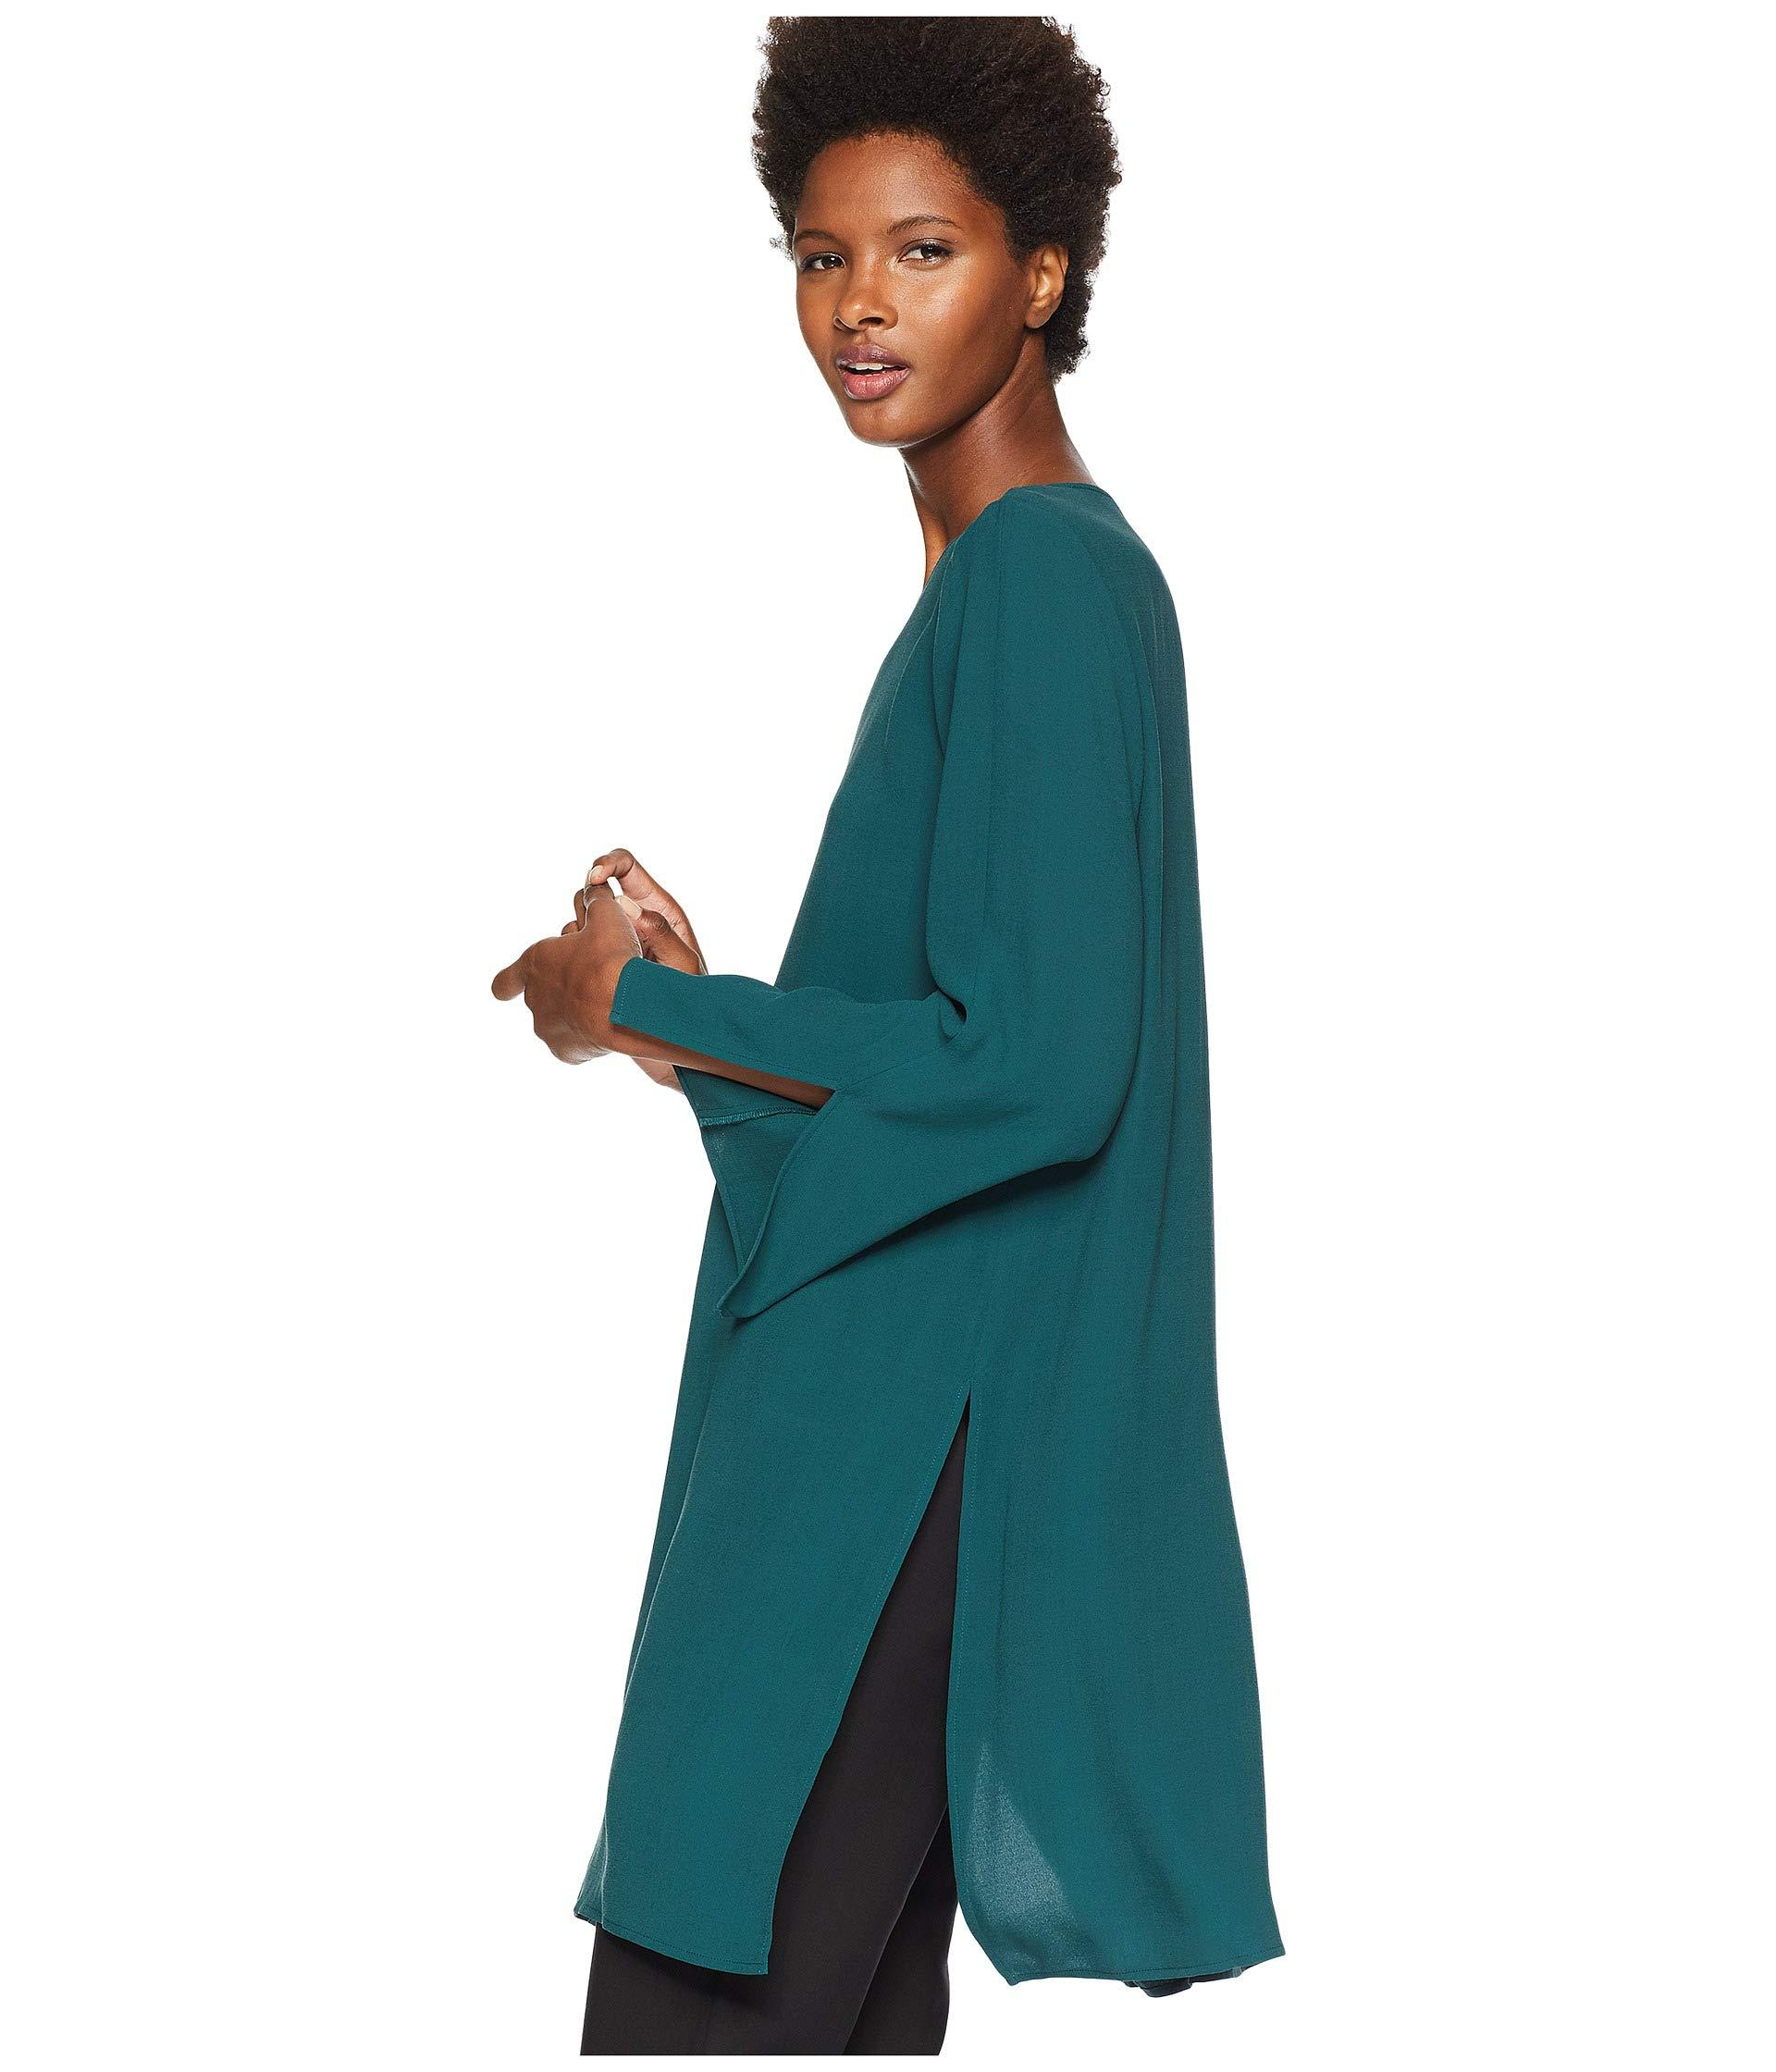 417b8b1c06dc80 Eileen Fisher - Green Silk Georgette Crepe Round Neck Tunic With Side Slits  - Lyst. View fullscreen